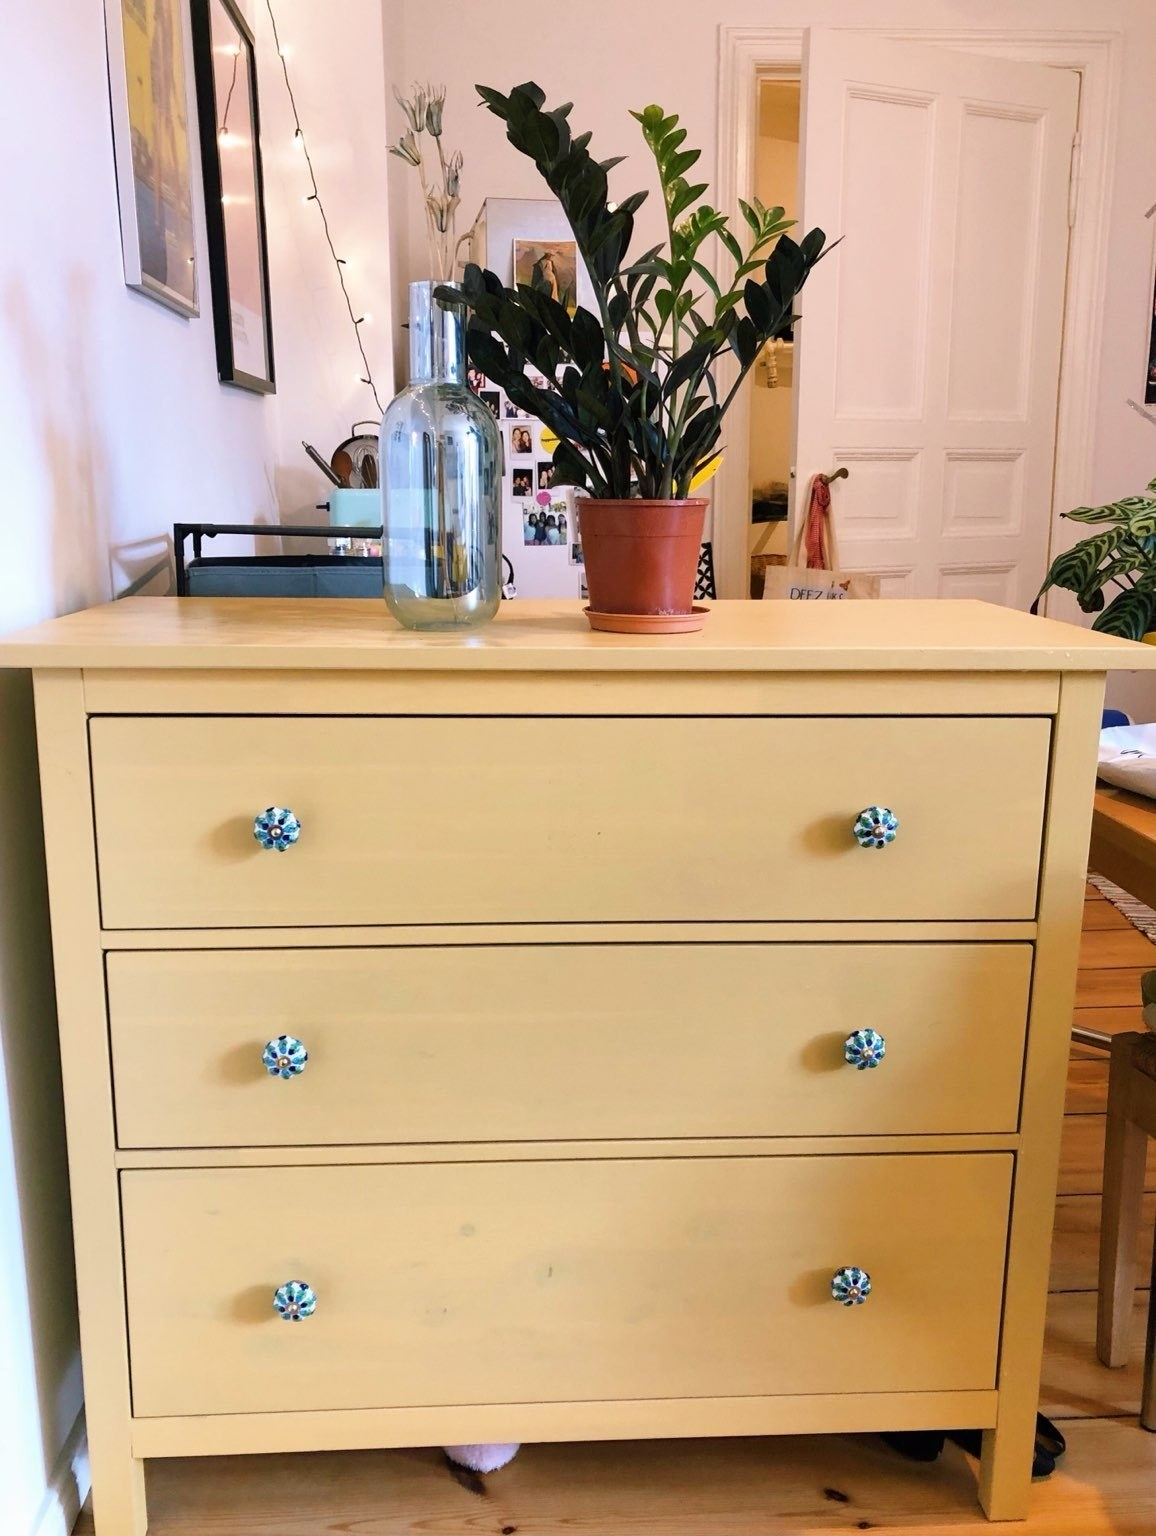 Bright yellow chest of drawers with blue and white knobs in writer's bedroom